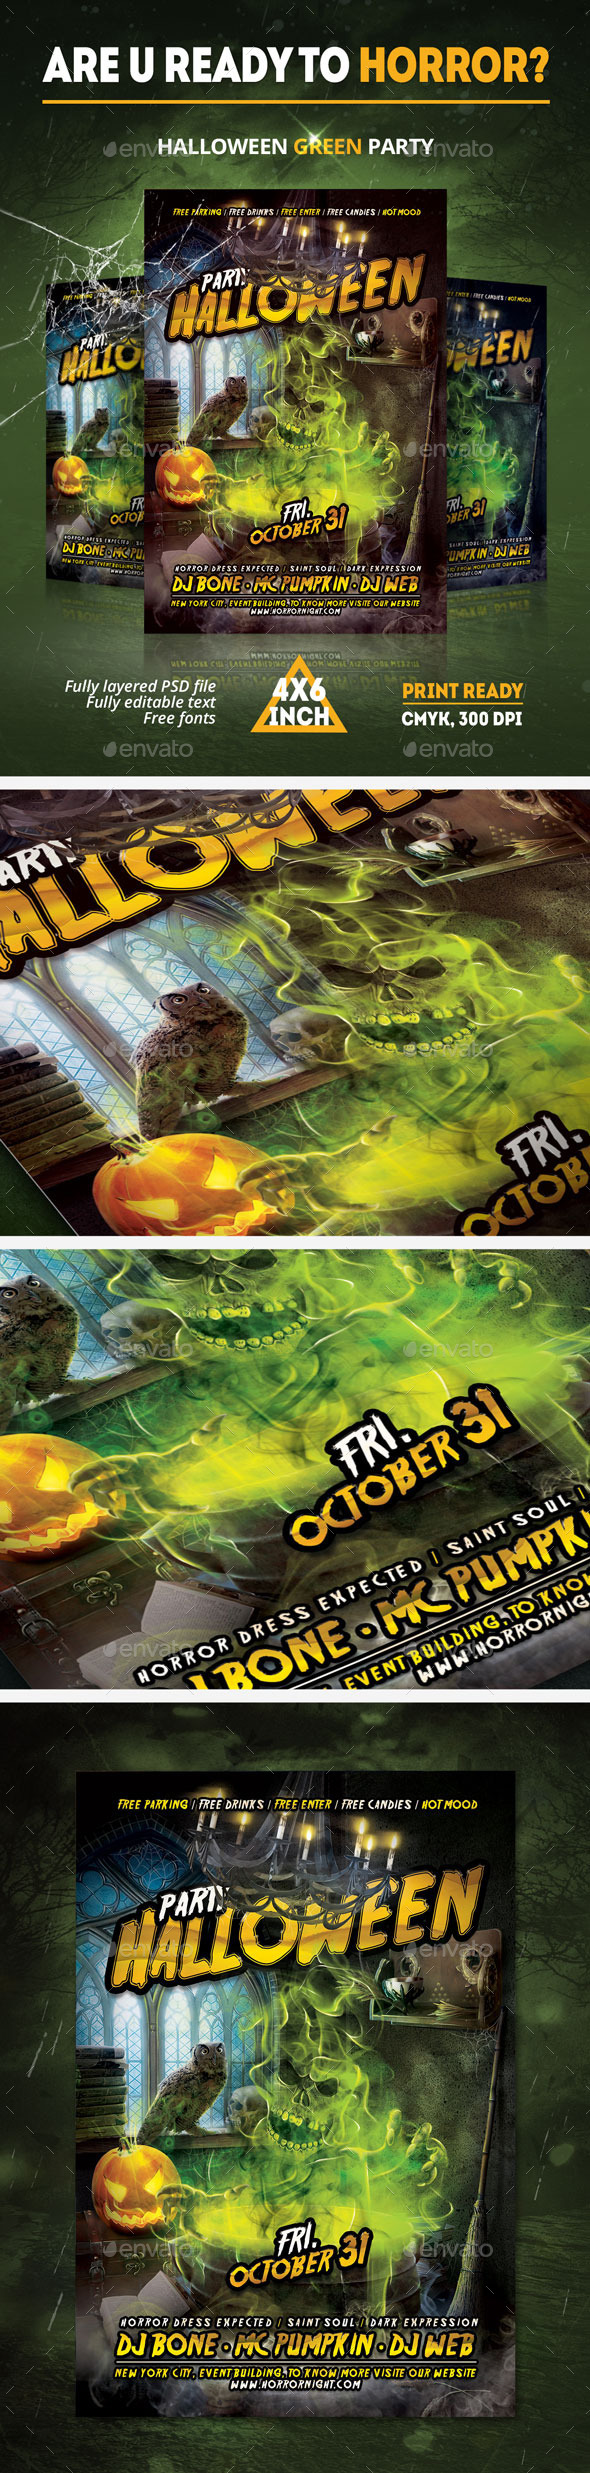 GraphicRiver Halloween Green paty Flyer 9112325